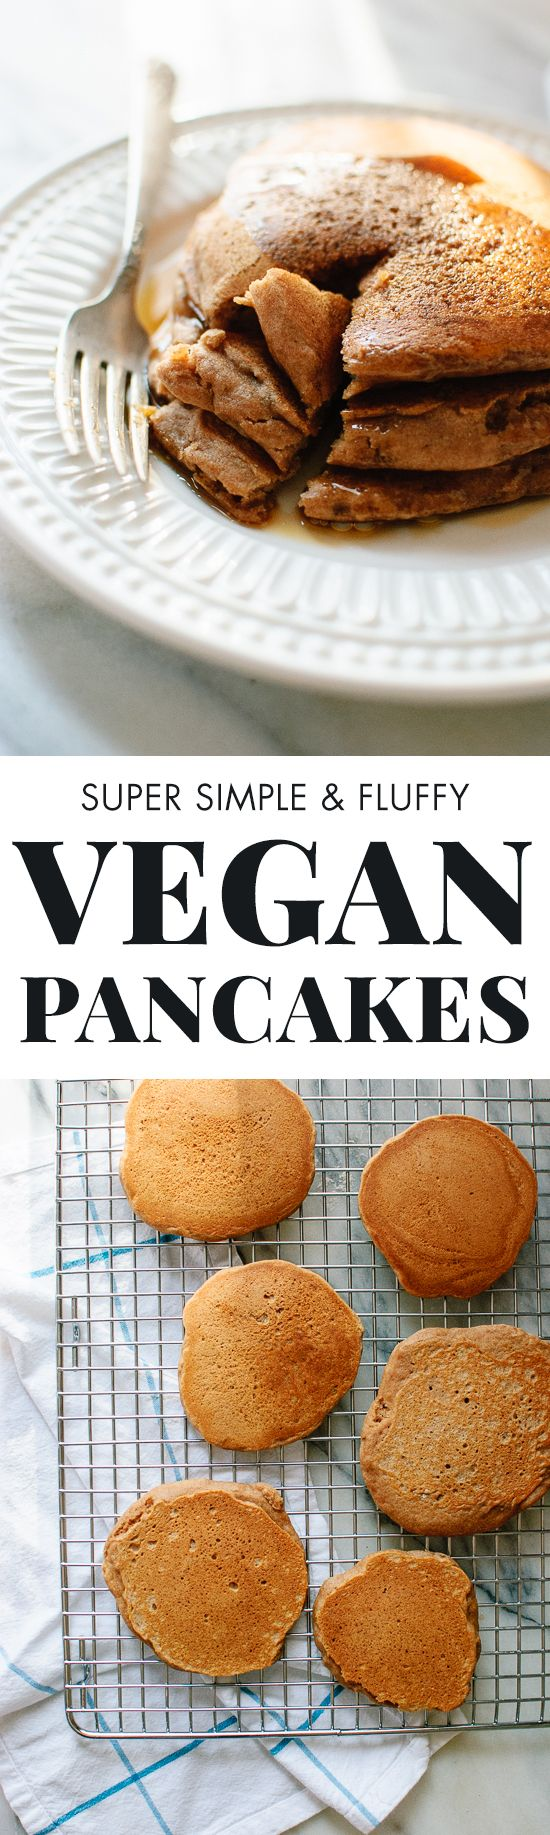 Super simple, healthy vegan pancakes. Who knew that eggless, whole grain pancakes could be so fluffy and delicious?! cookieandkate.com